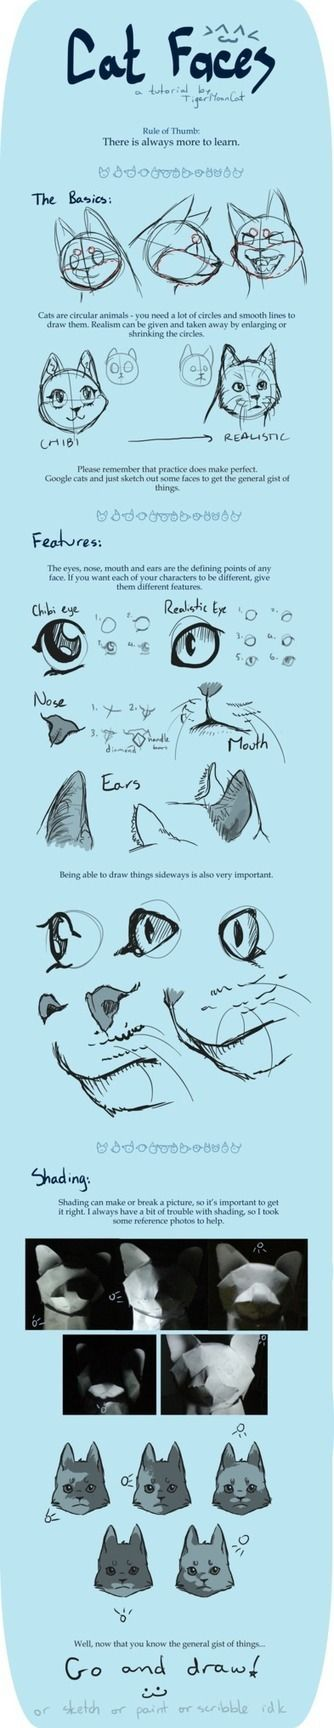 Cat Faces Drawing Reference Guide | Drawing References and Resources | Scoop.it